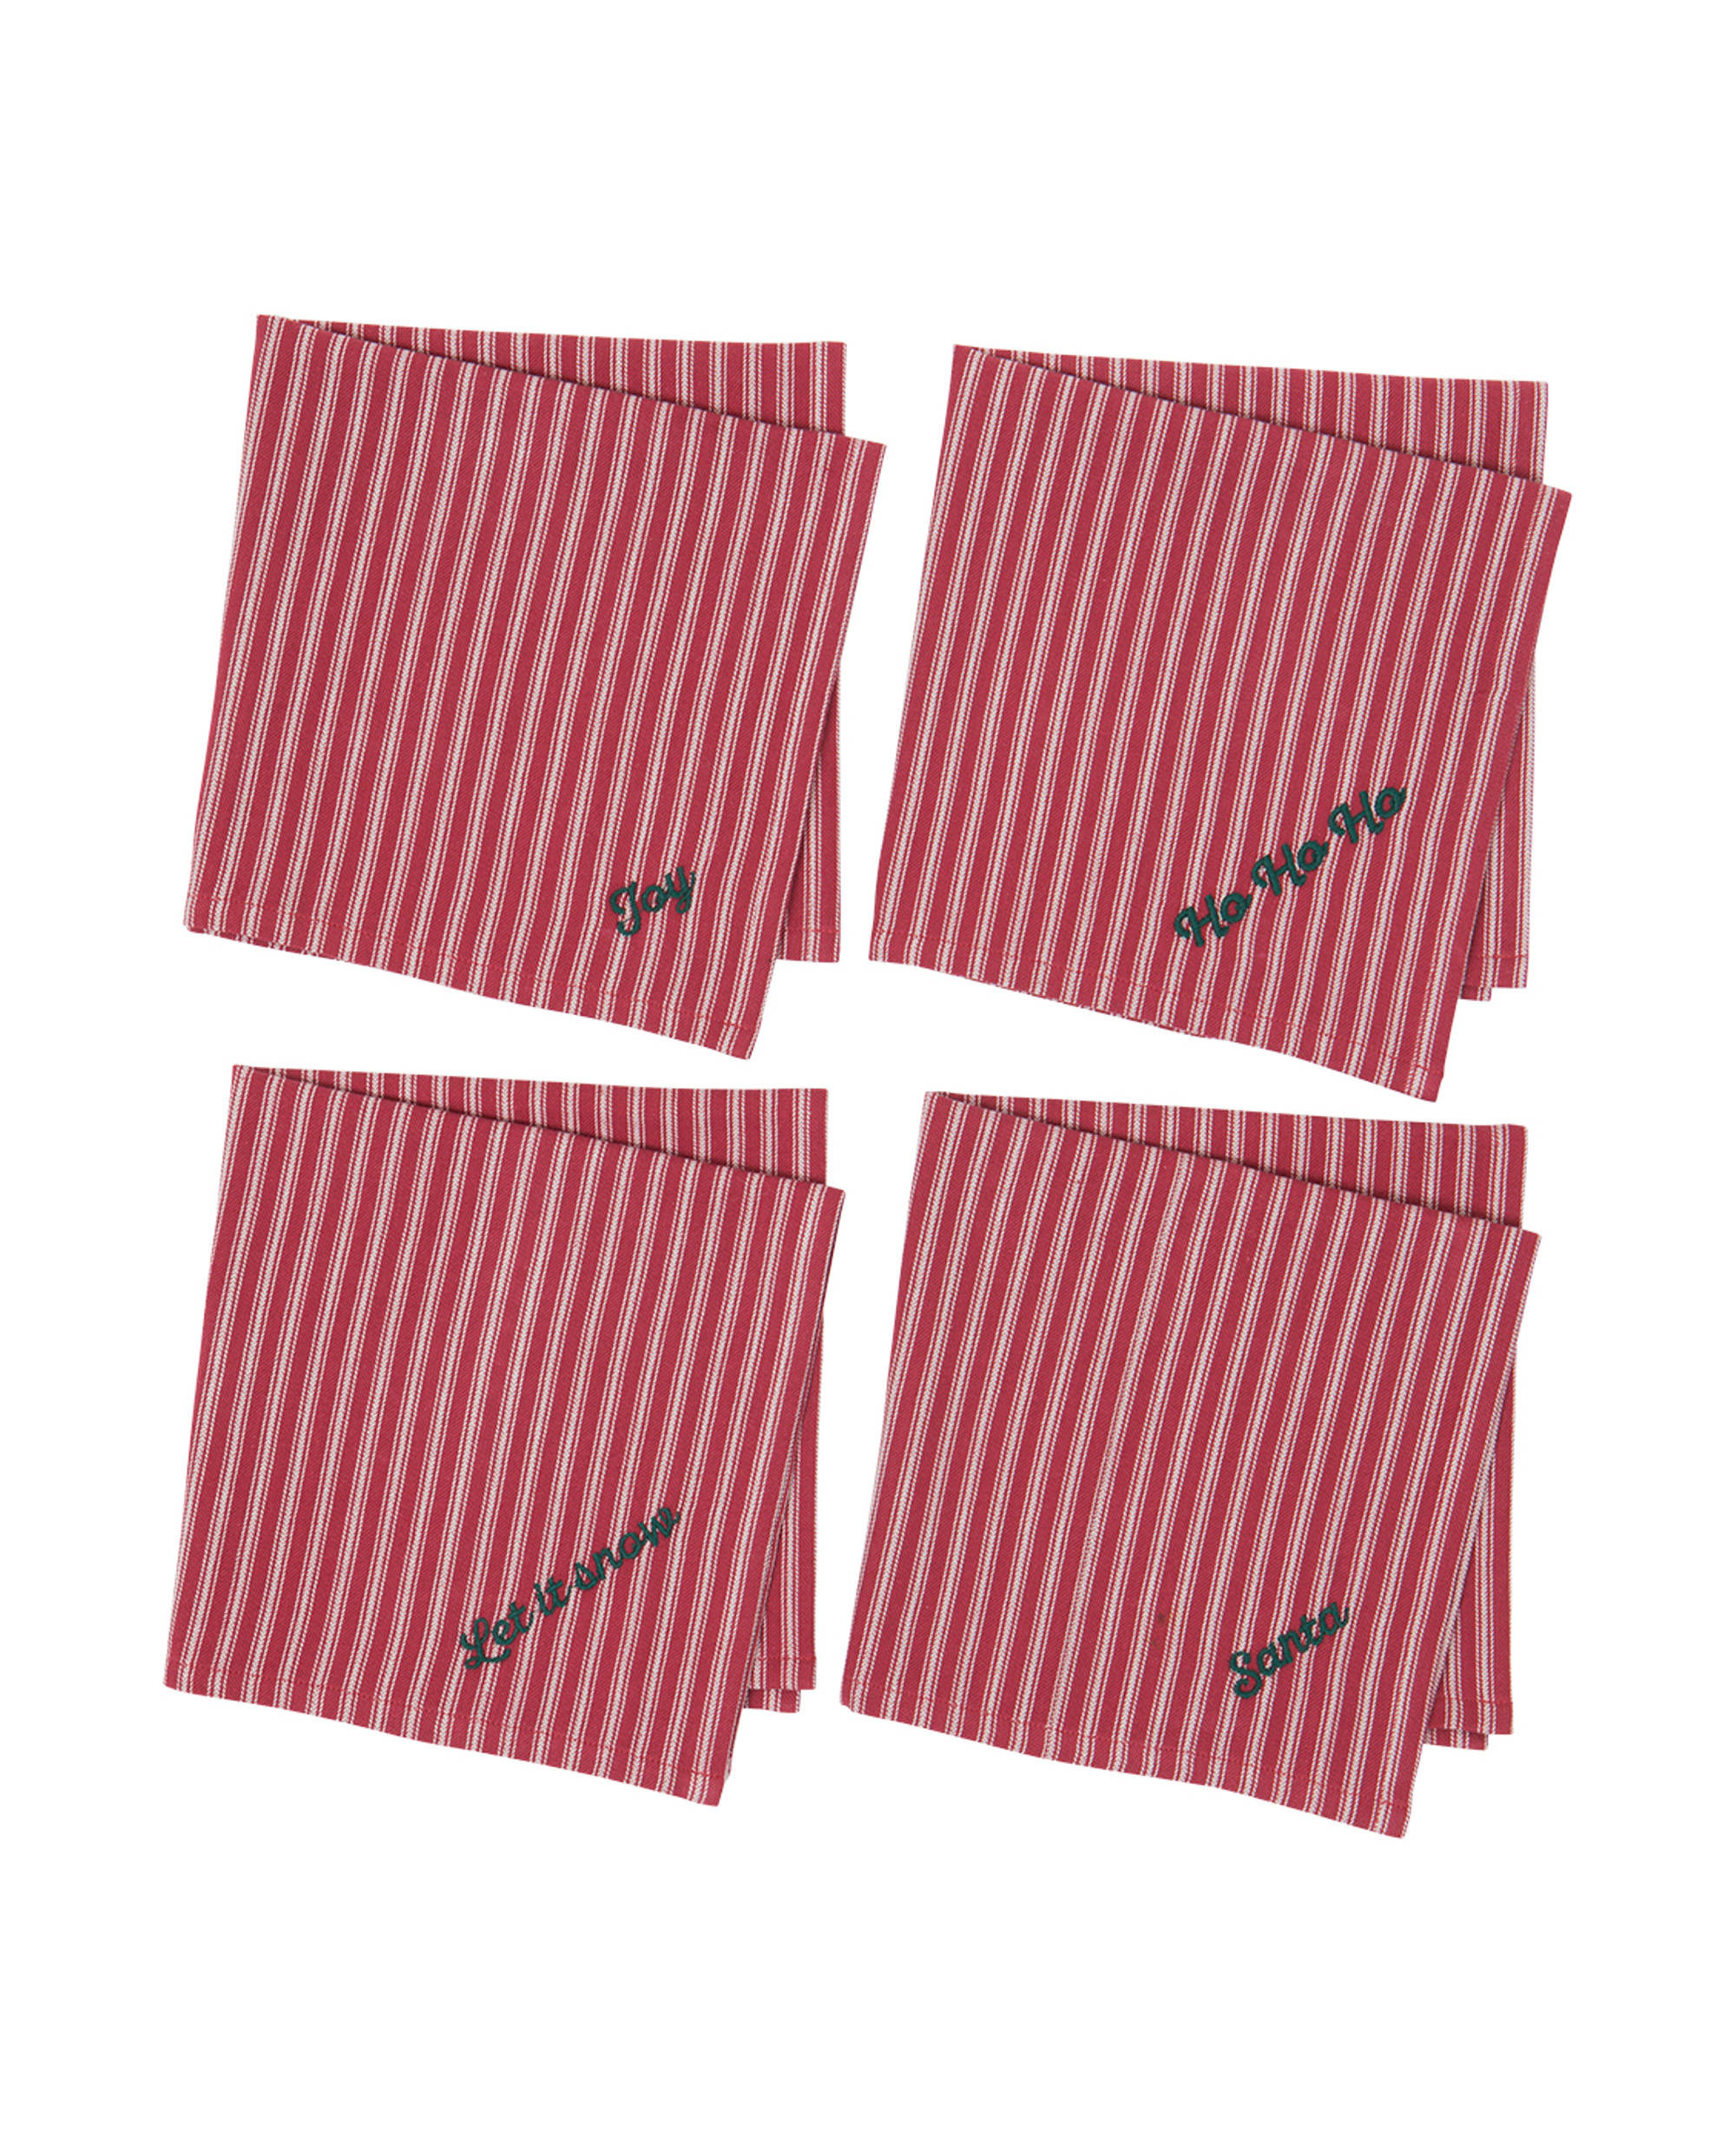 Holiday Cocktail Napkins (Set of 4), White/Red